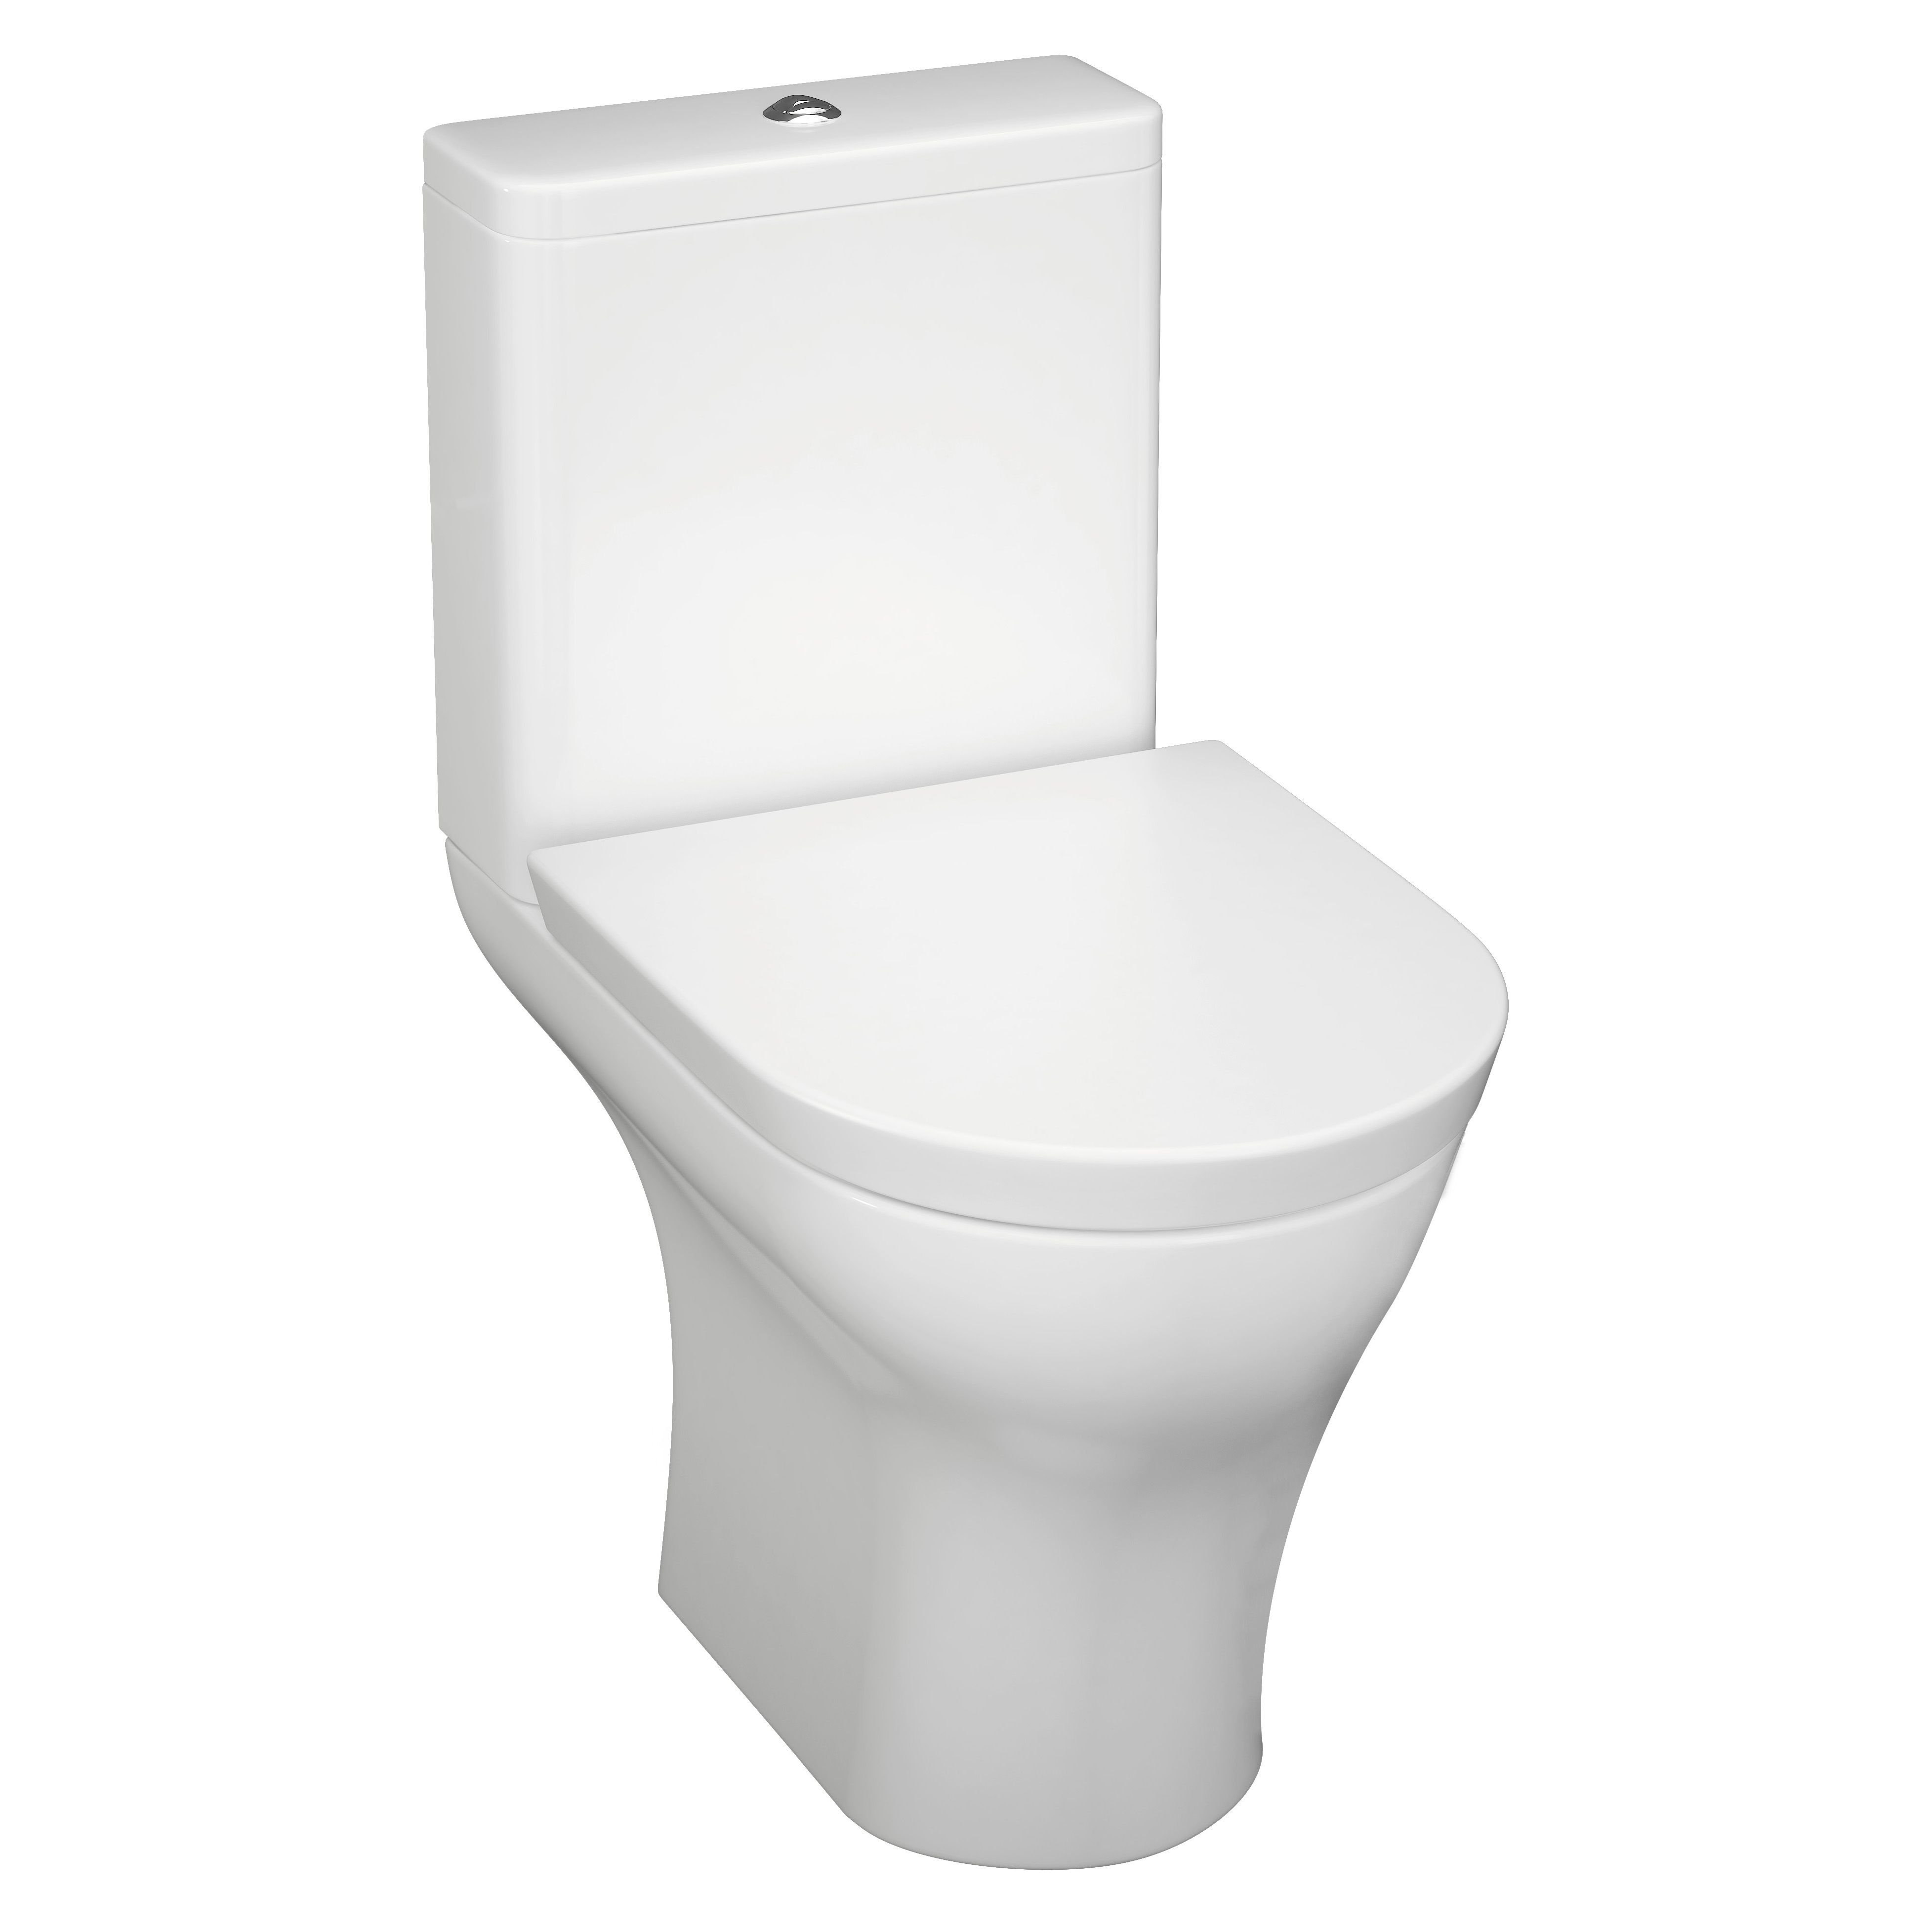 Cooke Lewis Angelica Modern Close Coupled Toilet With Soft Close Seat